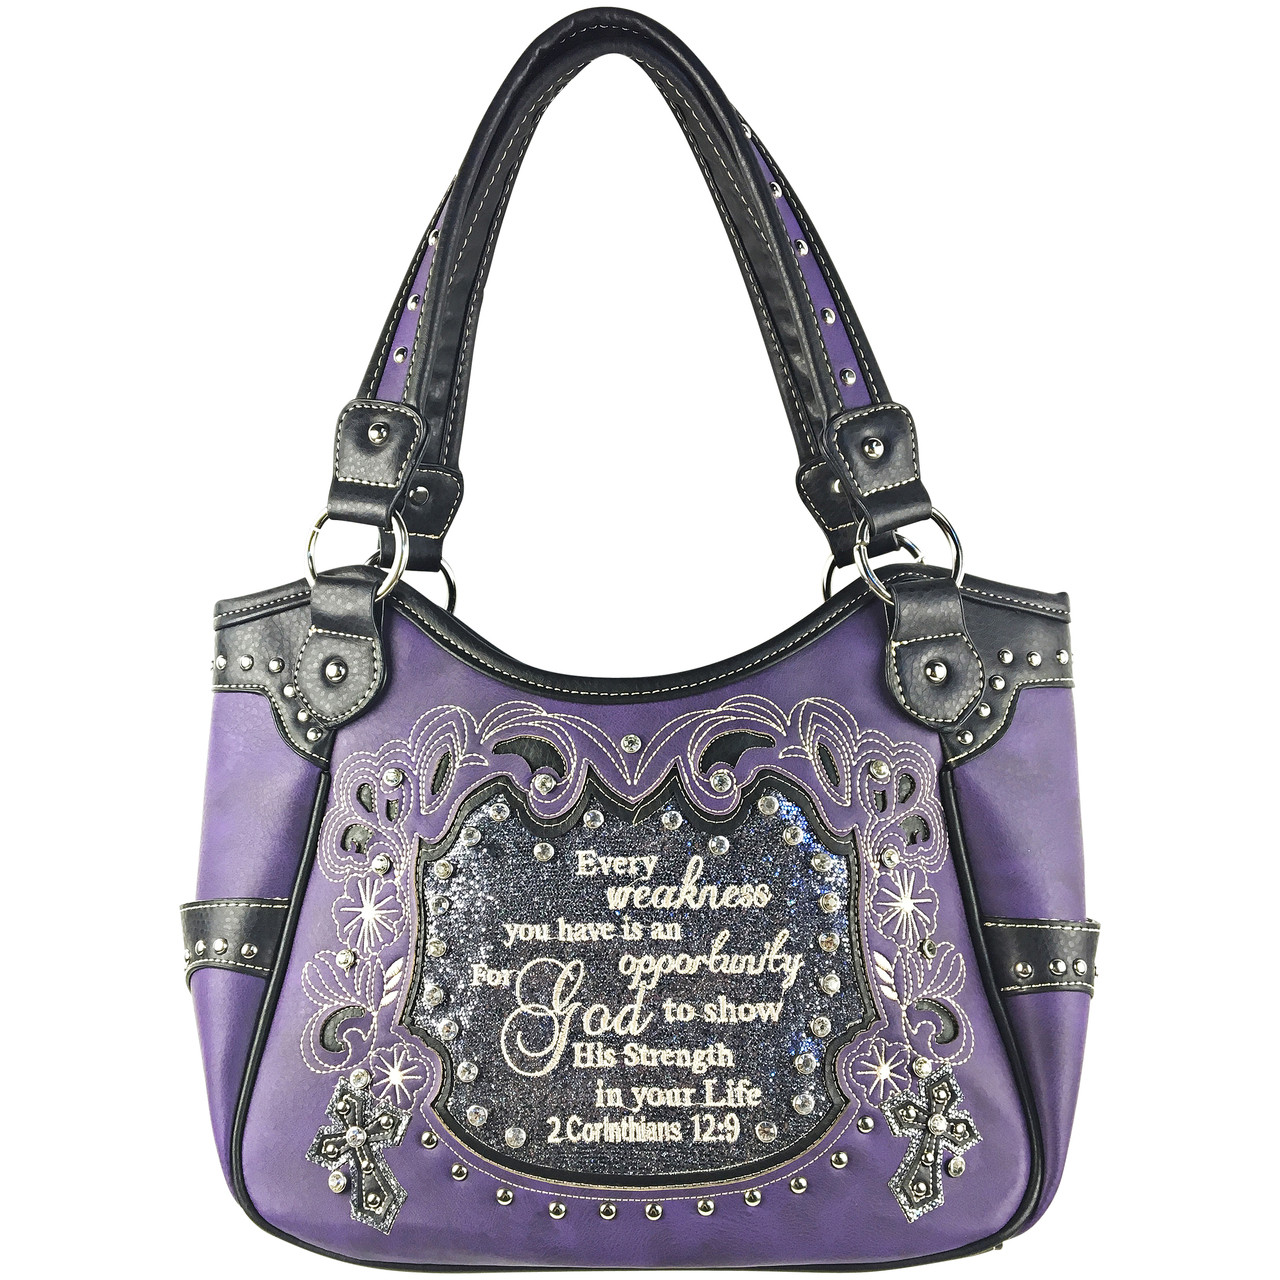 PURPLE BIBLE LIFE QUOTE RHINESTONE STUDDED LOOK SHOULDER HANDBAG